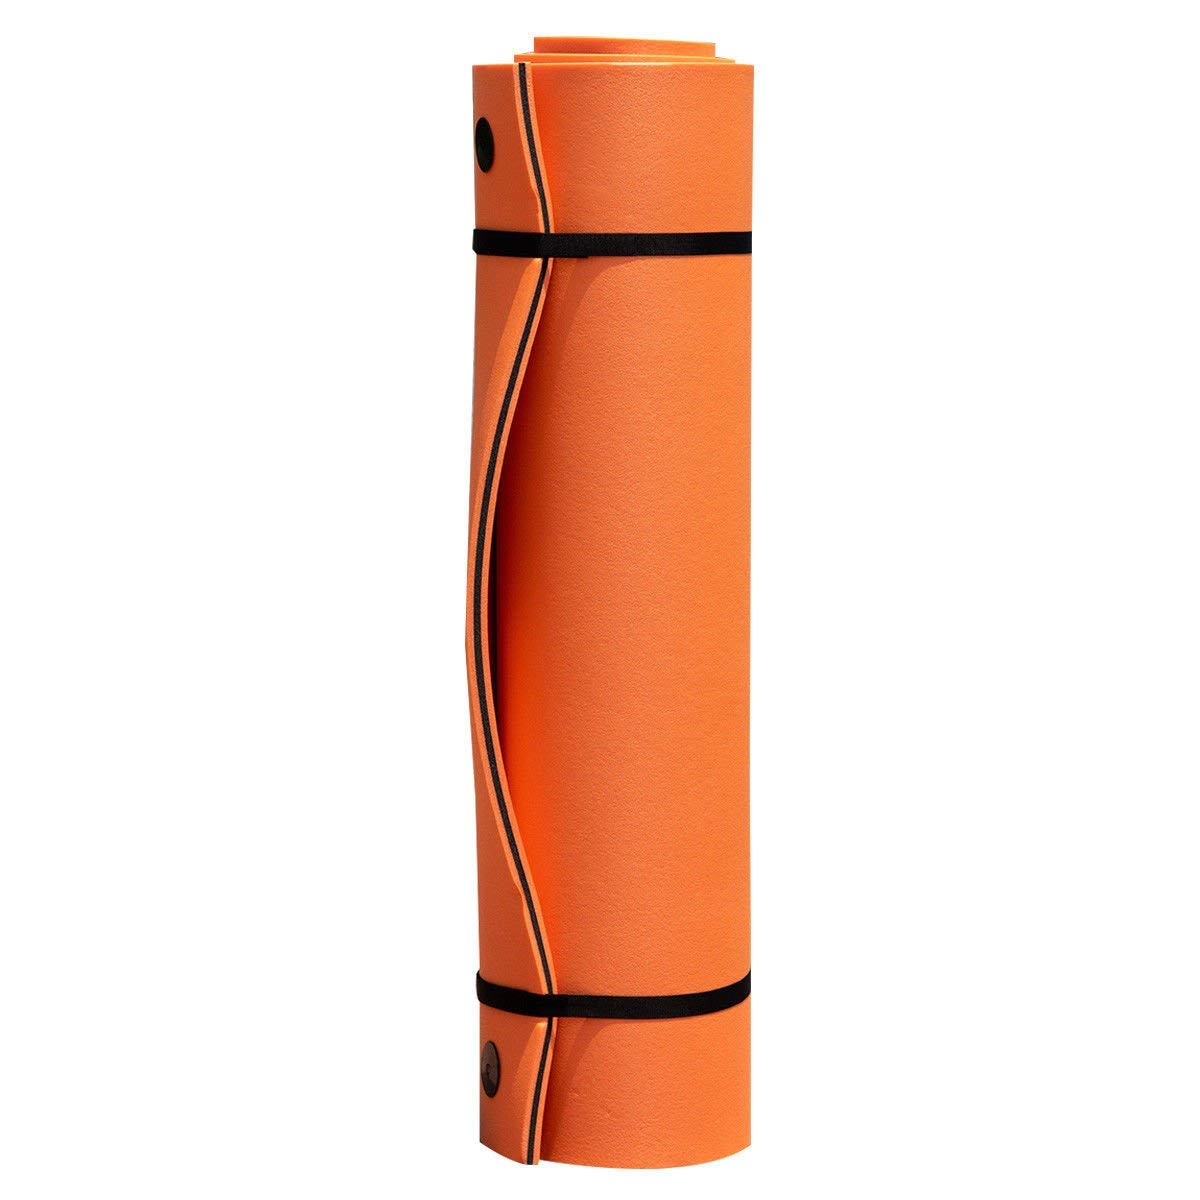 Goplus 12' x 6' Floating Water Pad for Lakes 3 Layer Floating Foam Mat Aqua Buoyancy Pad Designed for Water Recreation and Relaxing (Orange + Black) by Goplus (Image #8)